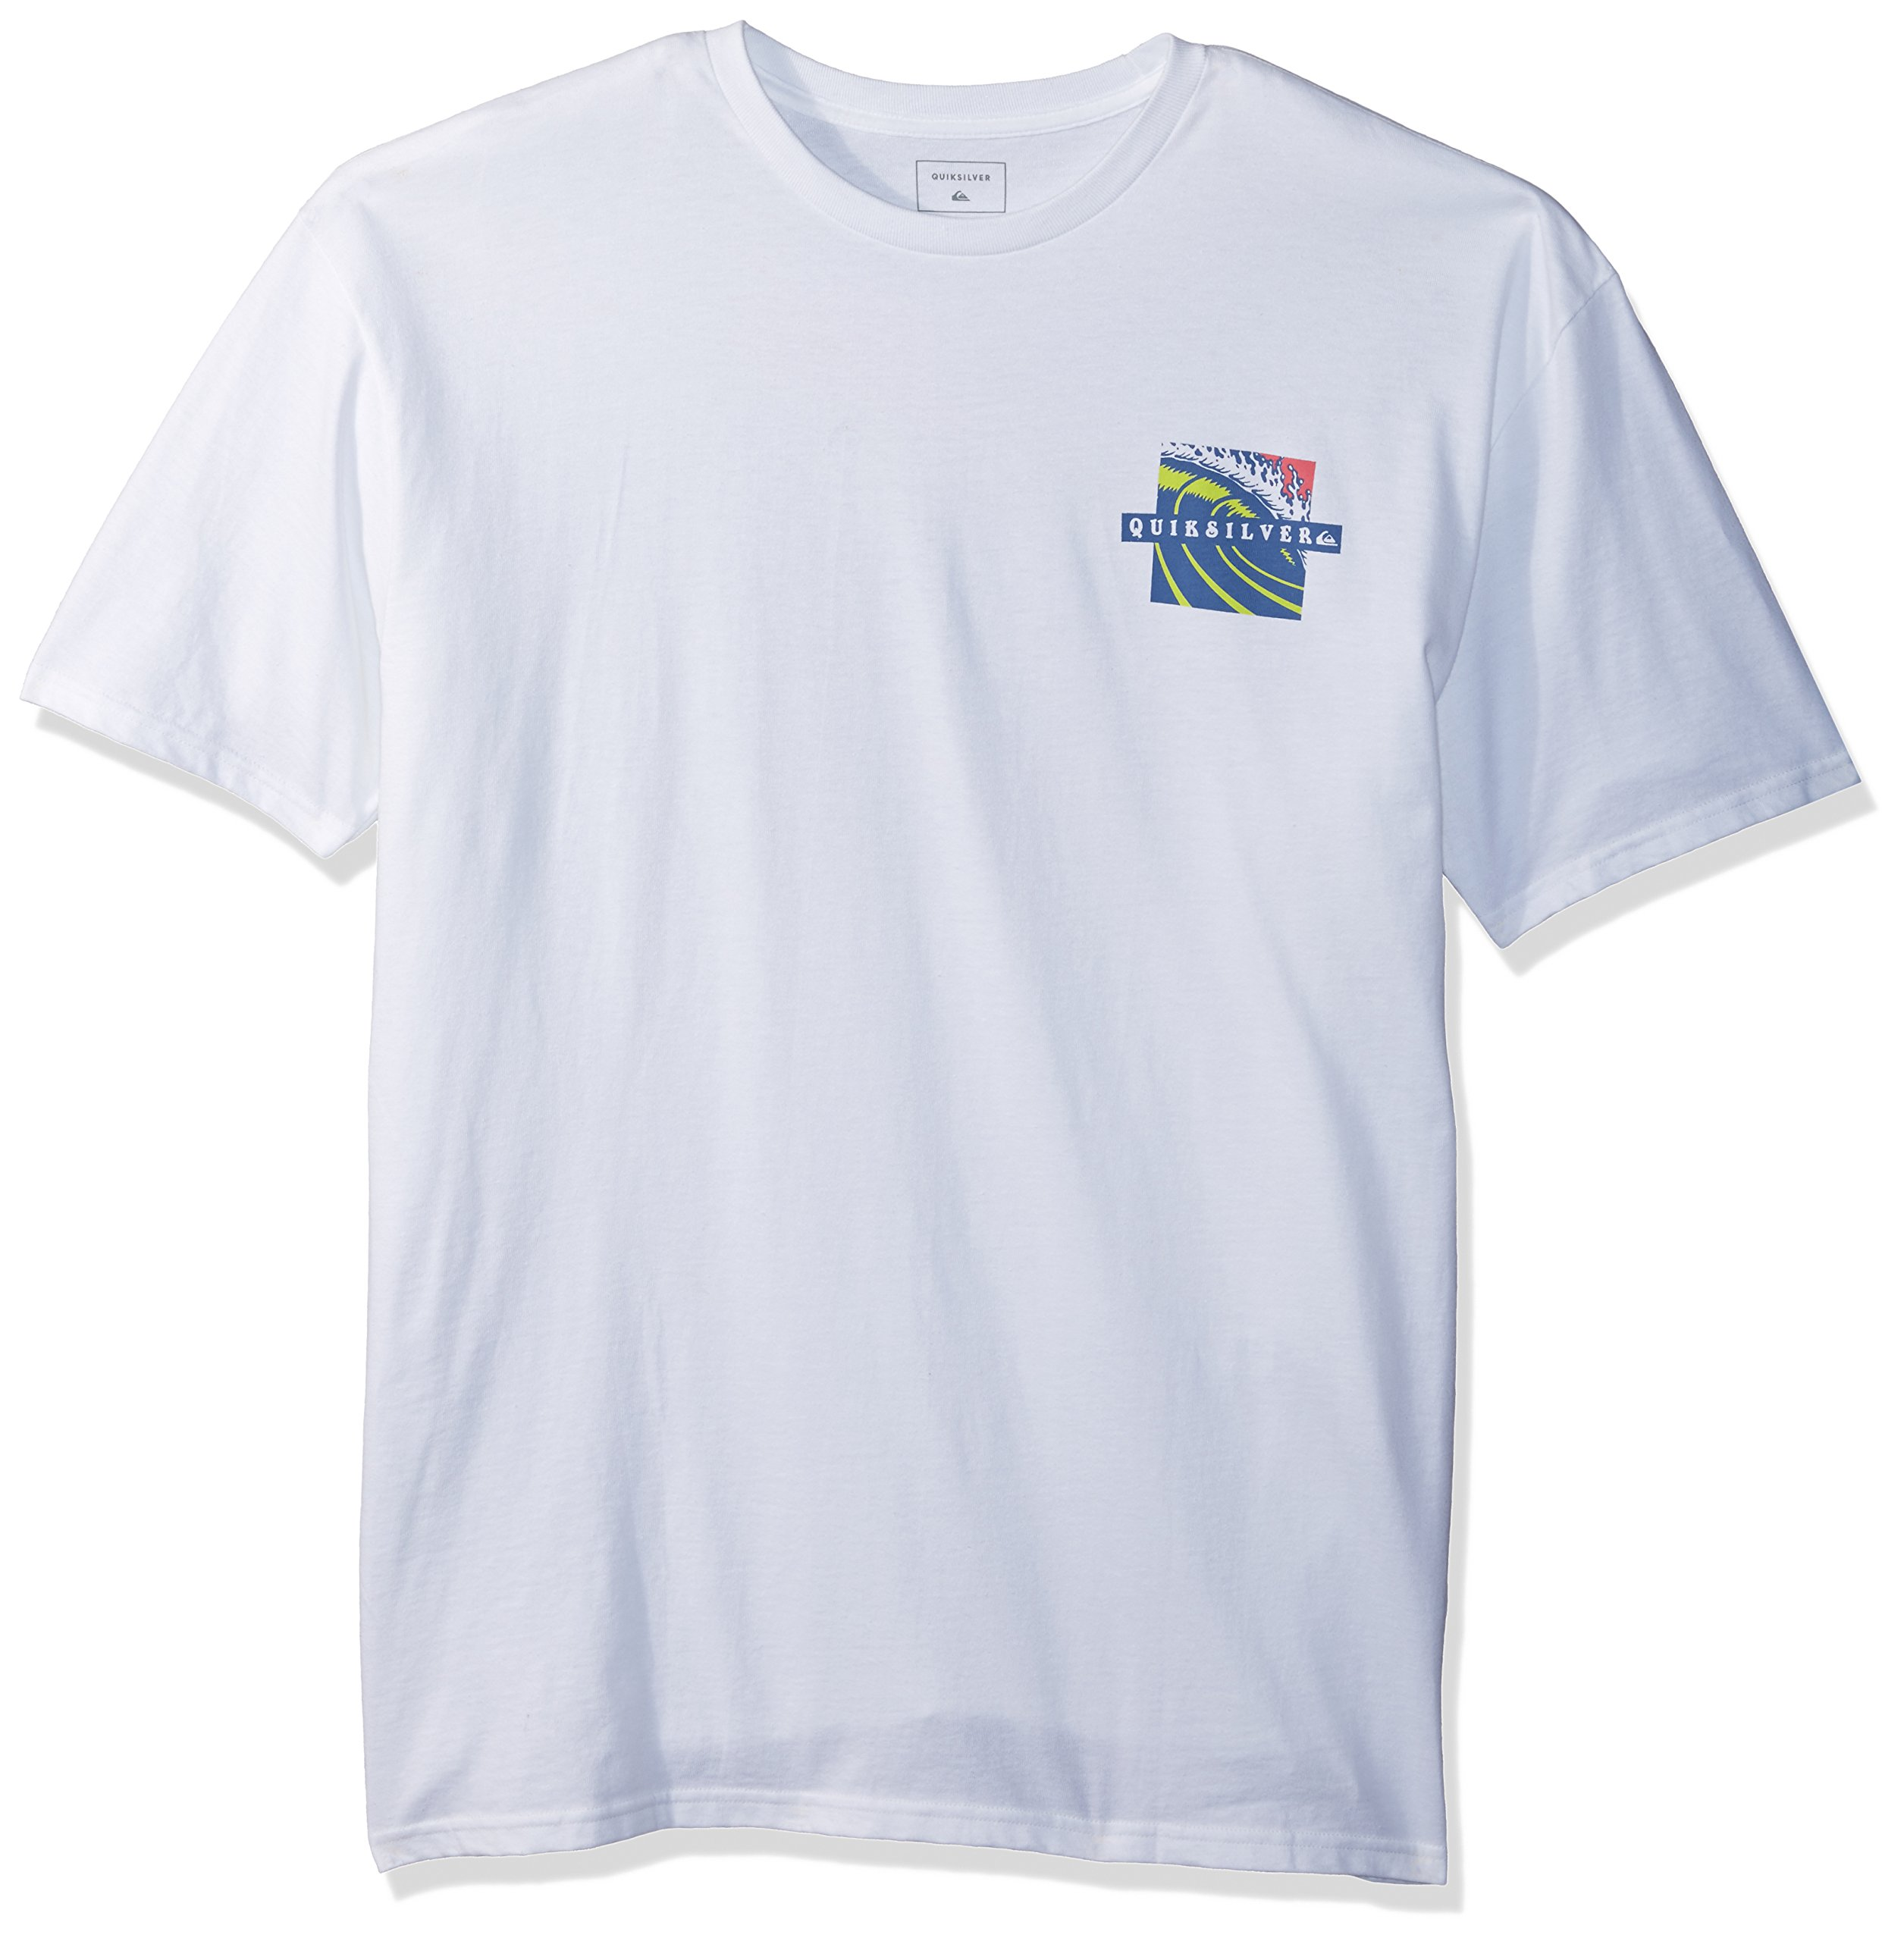 Quiksilver Men's Tropic Eruption Tee Shirt, White, XL by Quiksilver (Image #1)